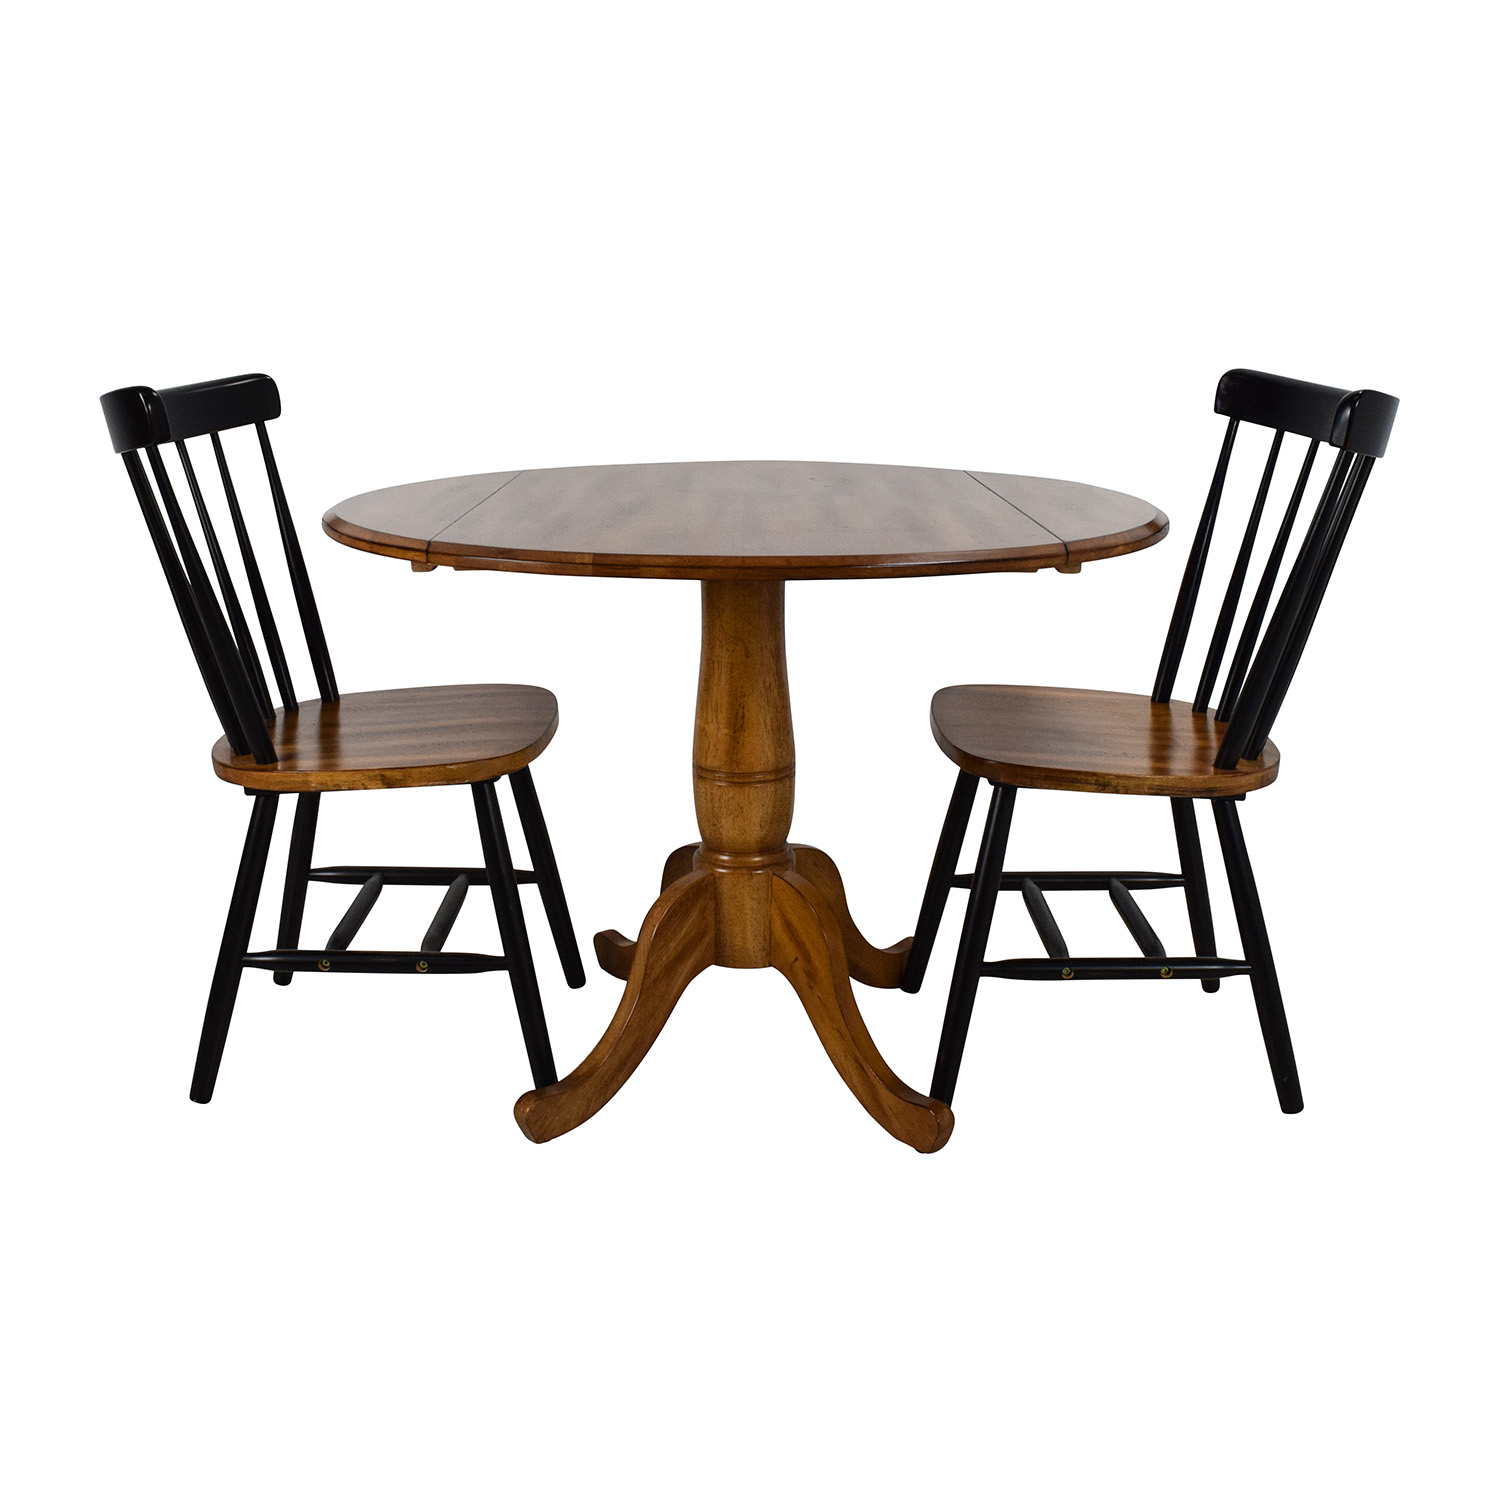 72% OFF - Raymour & Flanigan Raymour & Flanigan Foldable Table Set ...